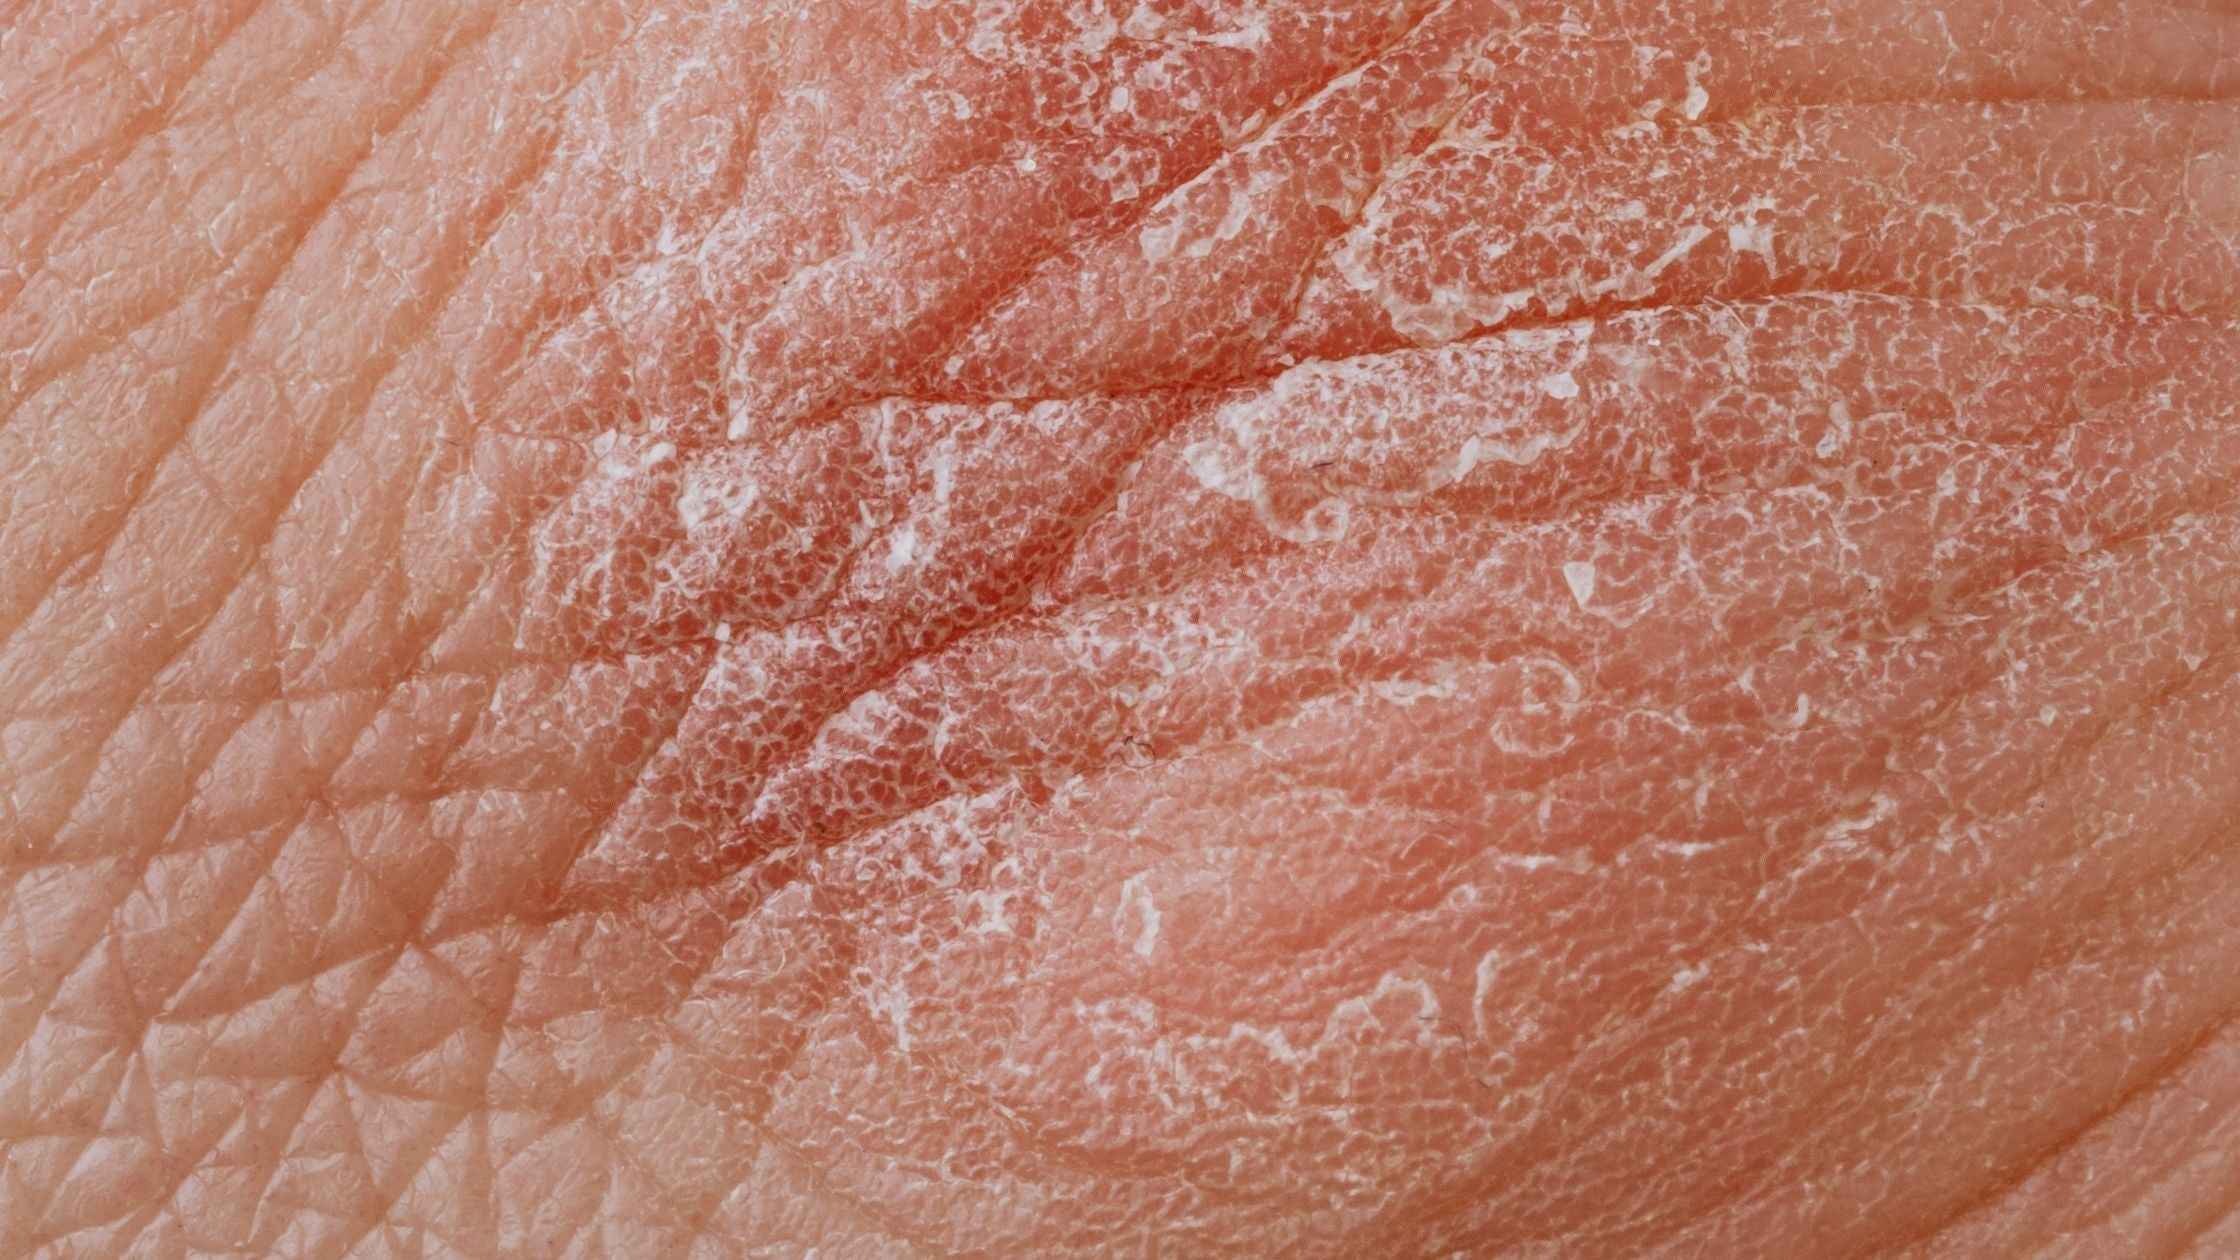 Is Psoriasis a Serious Skin Condition?